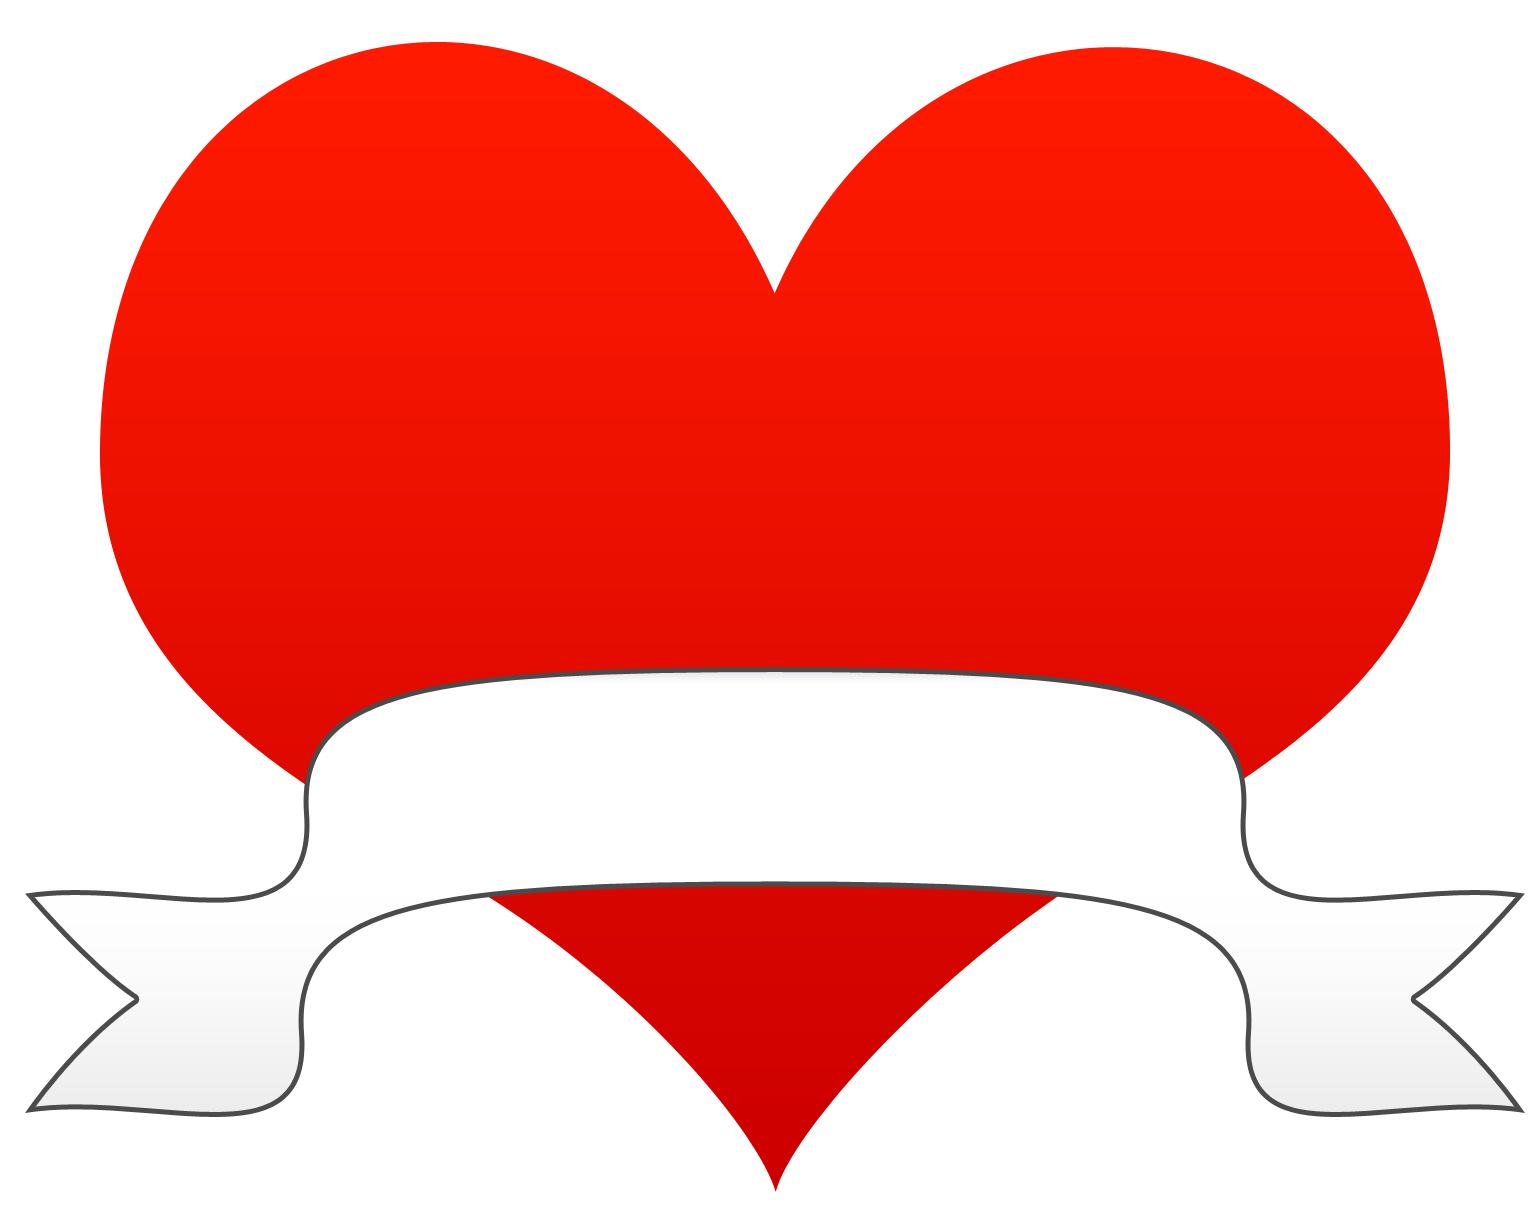 Hearts heart clip art black and white free clipart images